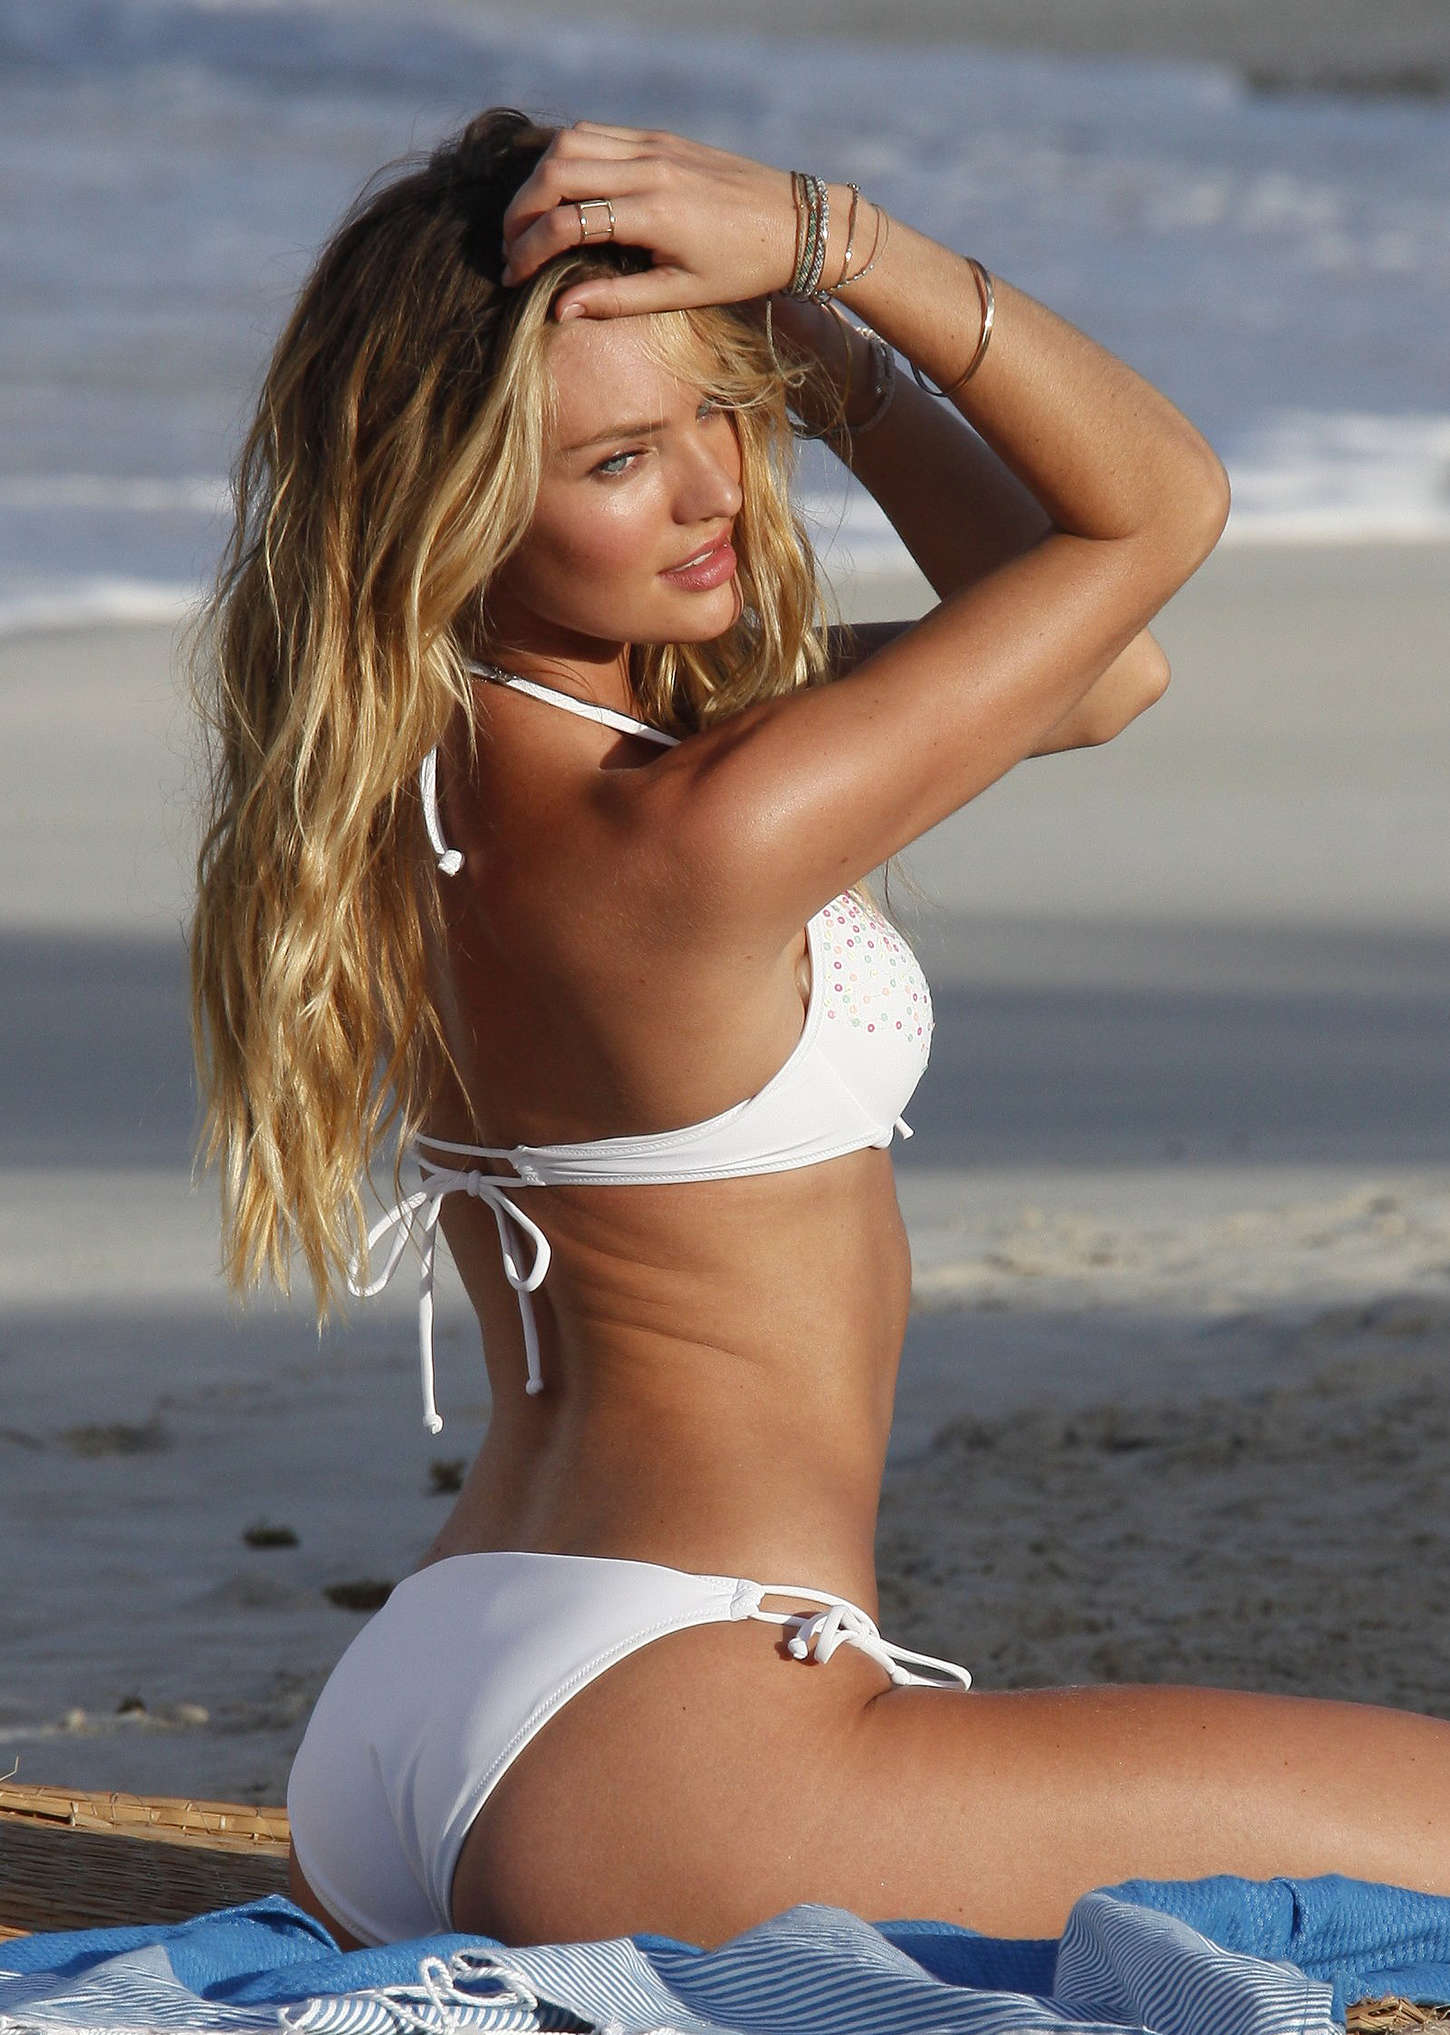 Candice Swanepoel In White Bikini 2013 VS Photoshoot